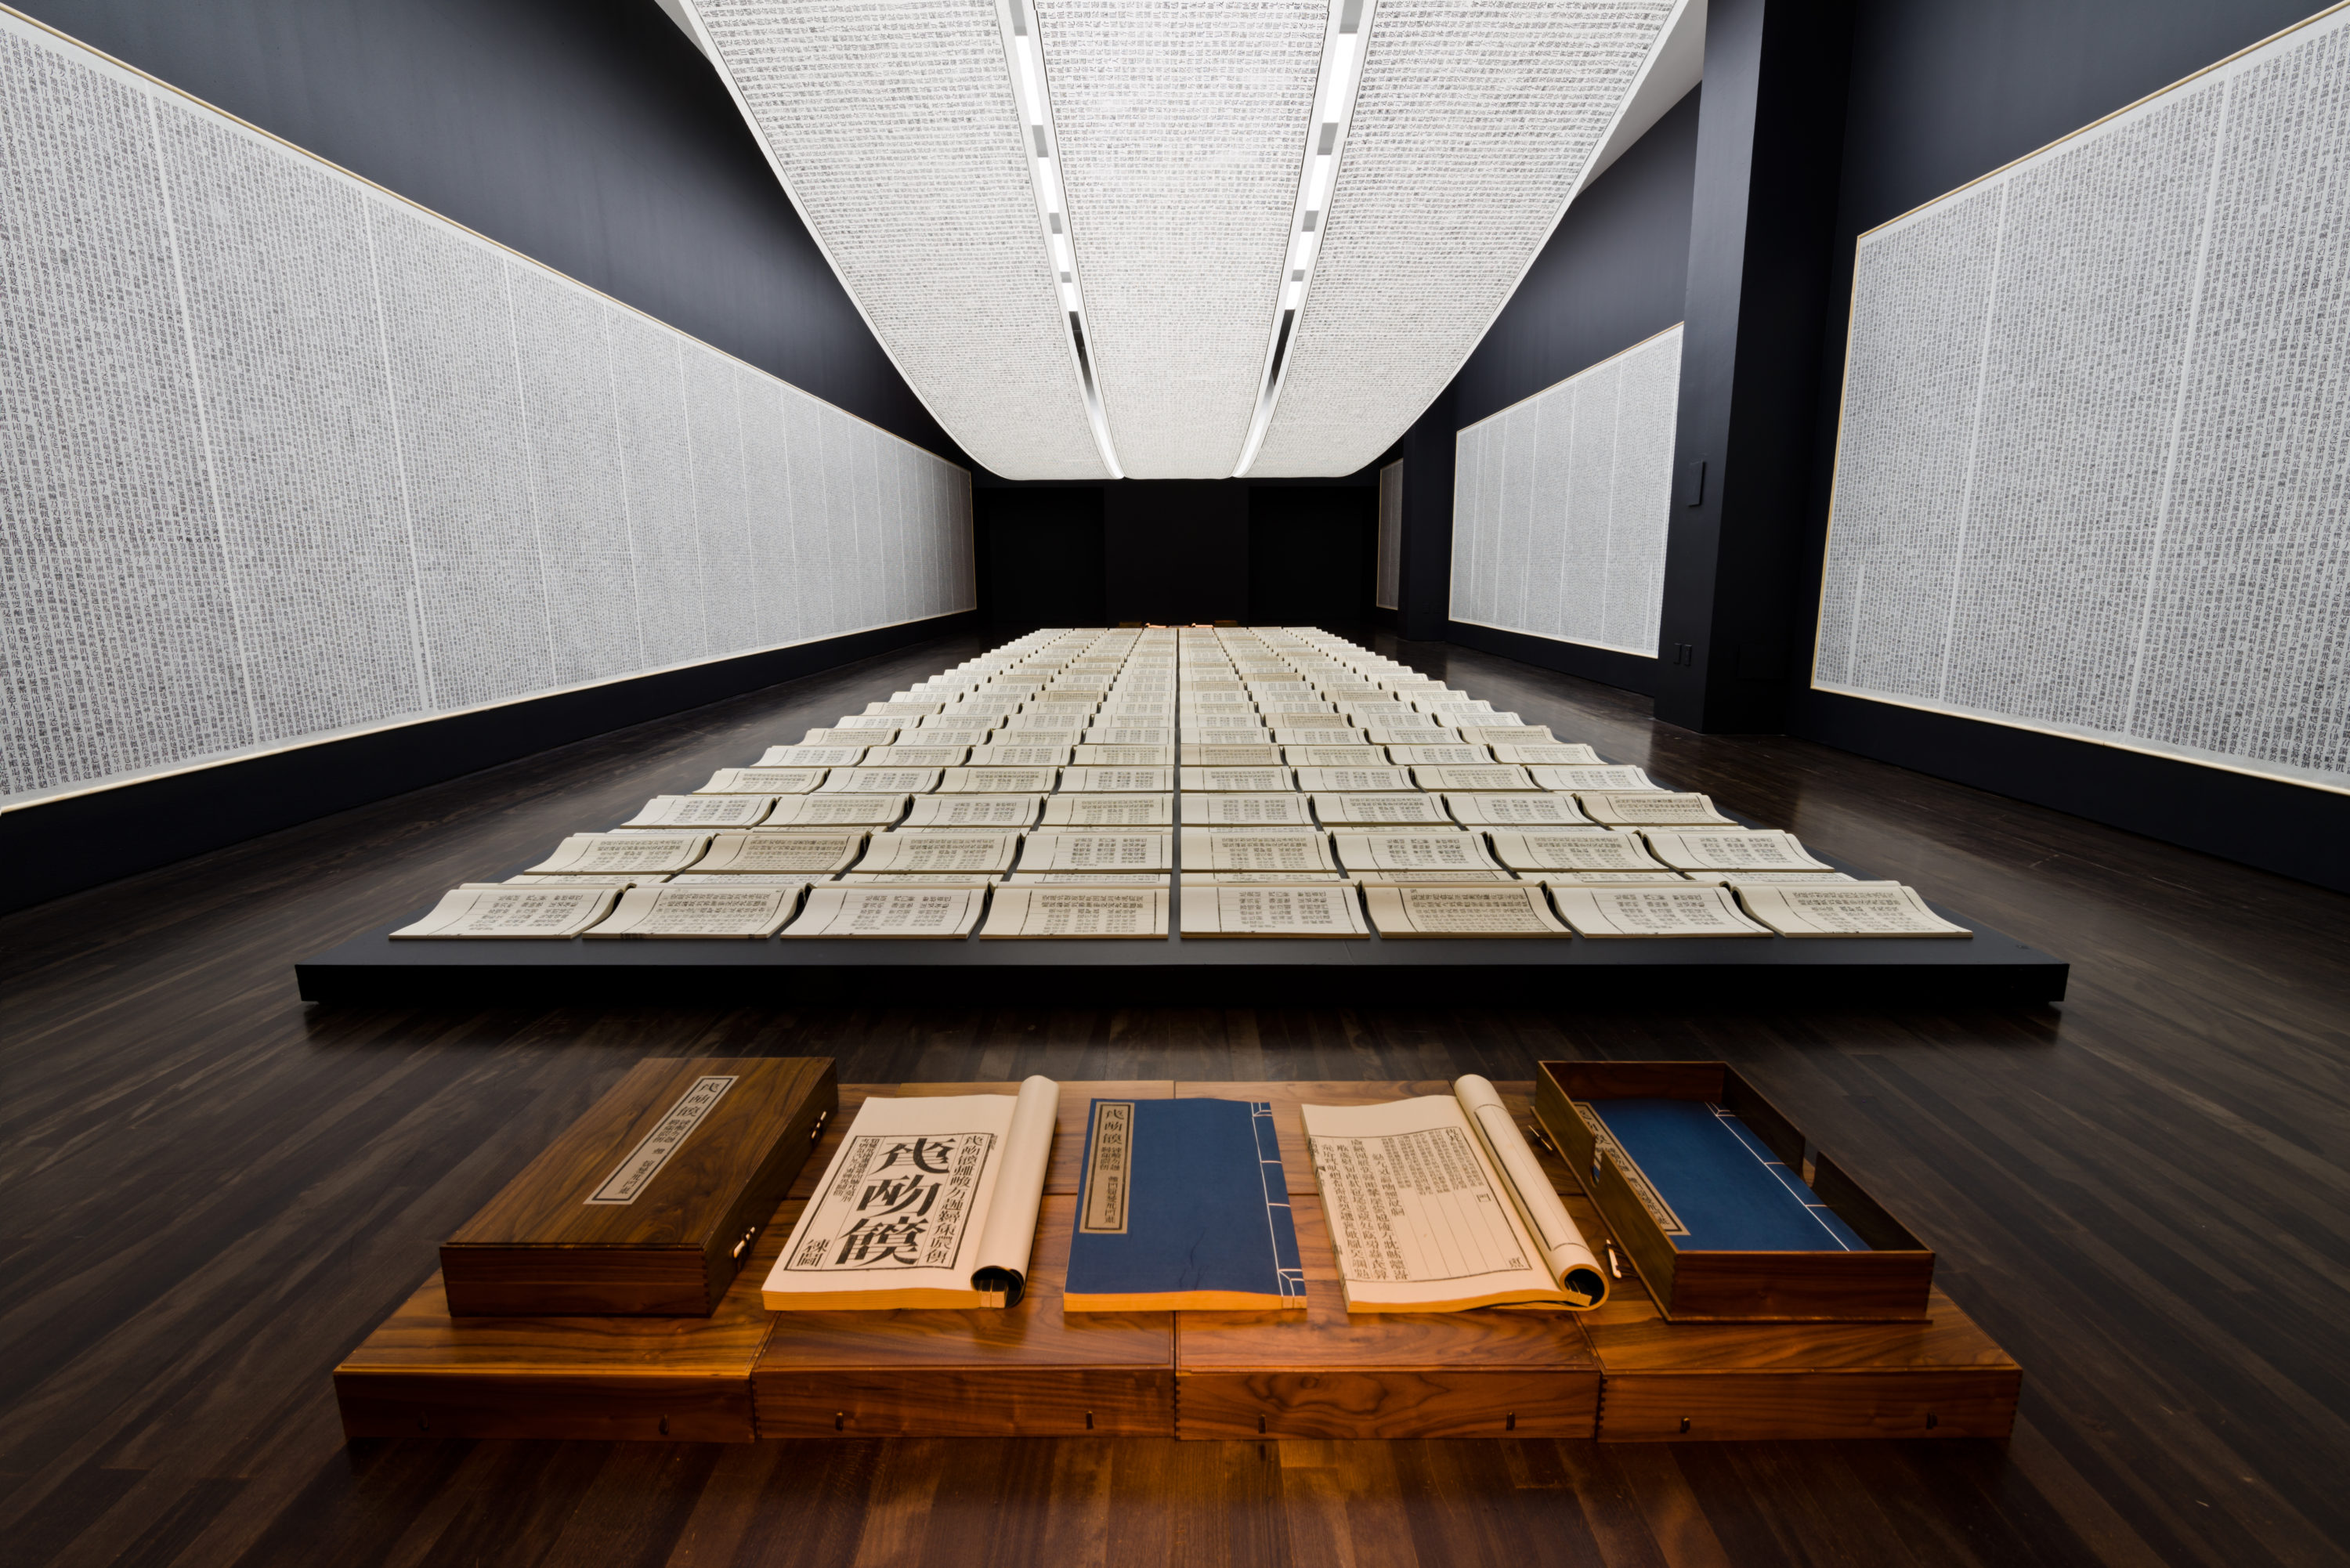 """instlallation view of Xu Bing's """"Book from the Sky from the self titled exhibition. Walls and floor are covered in scrolls and scrolls hanging from the ceiling."""